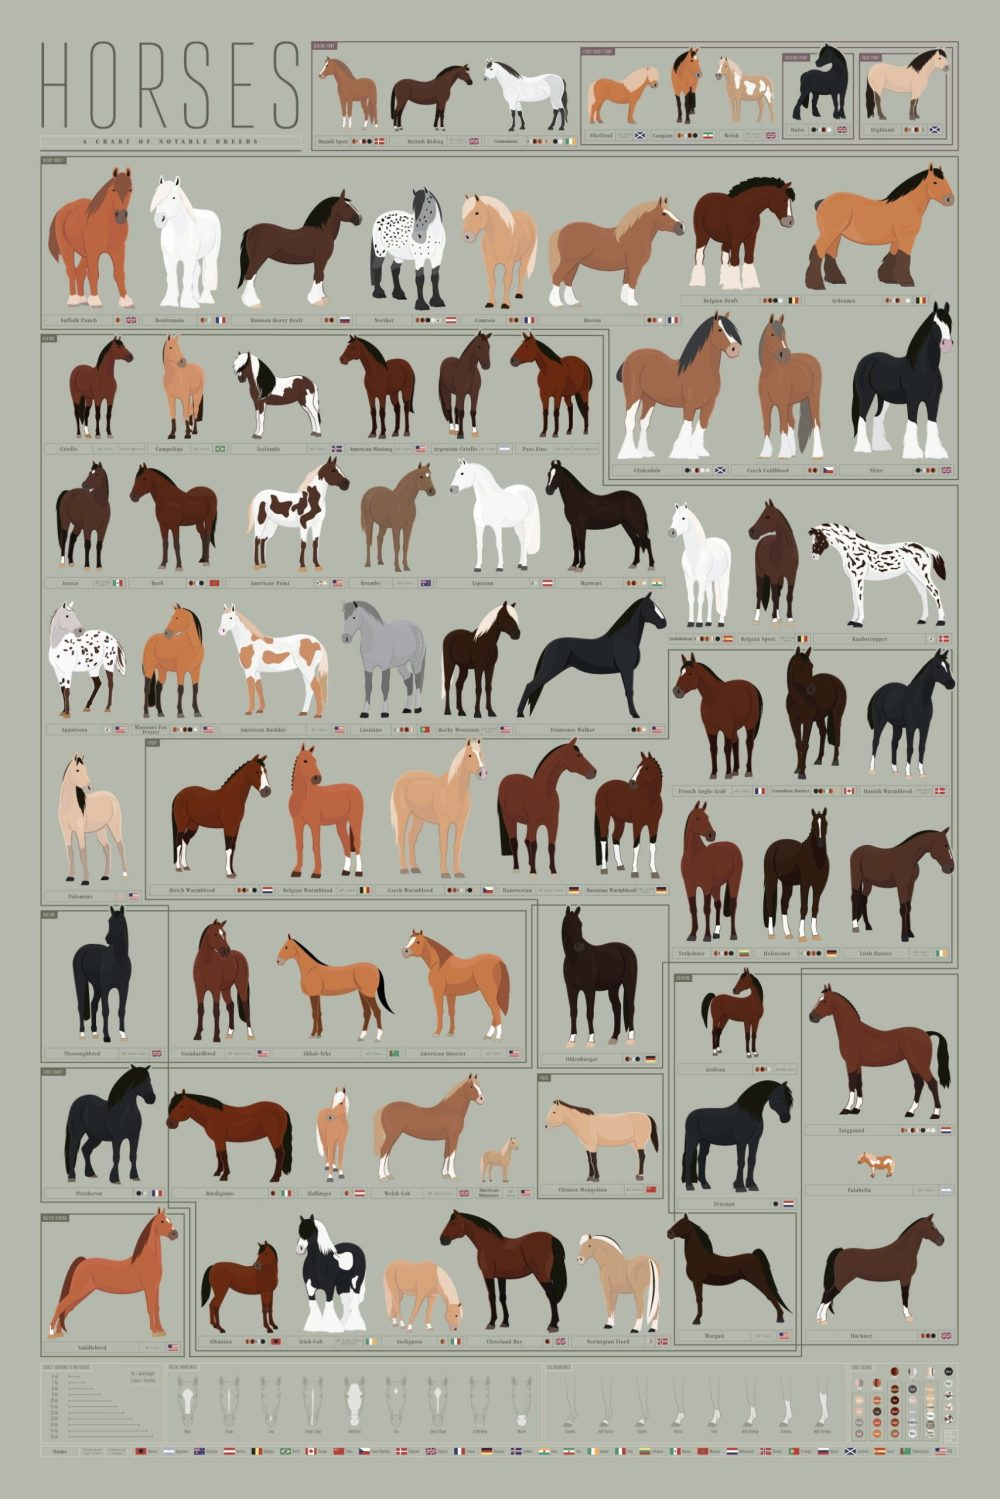 medium resolution of horses archives common sense evaluation horse color diagram horse breed diagram